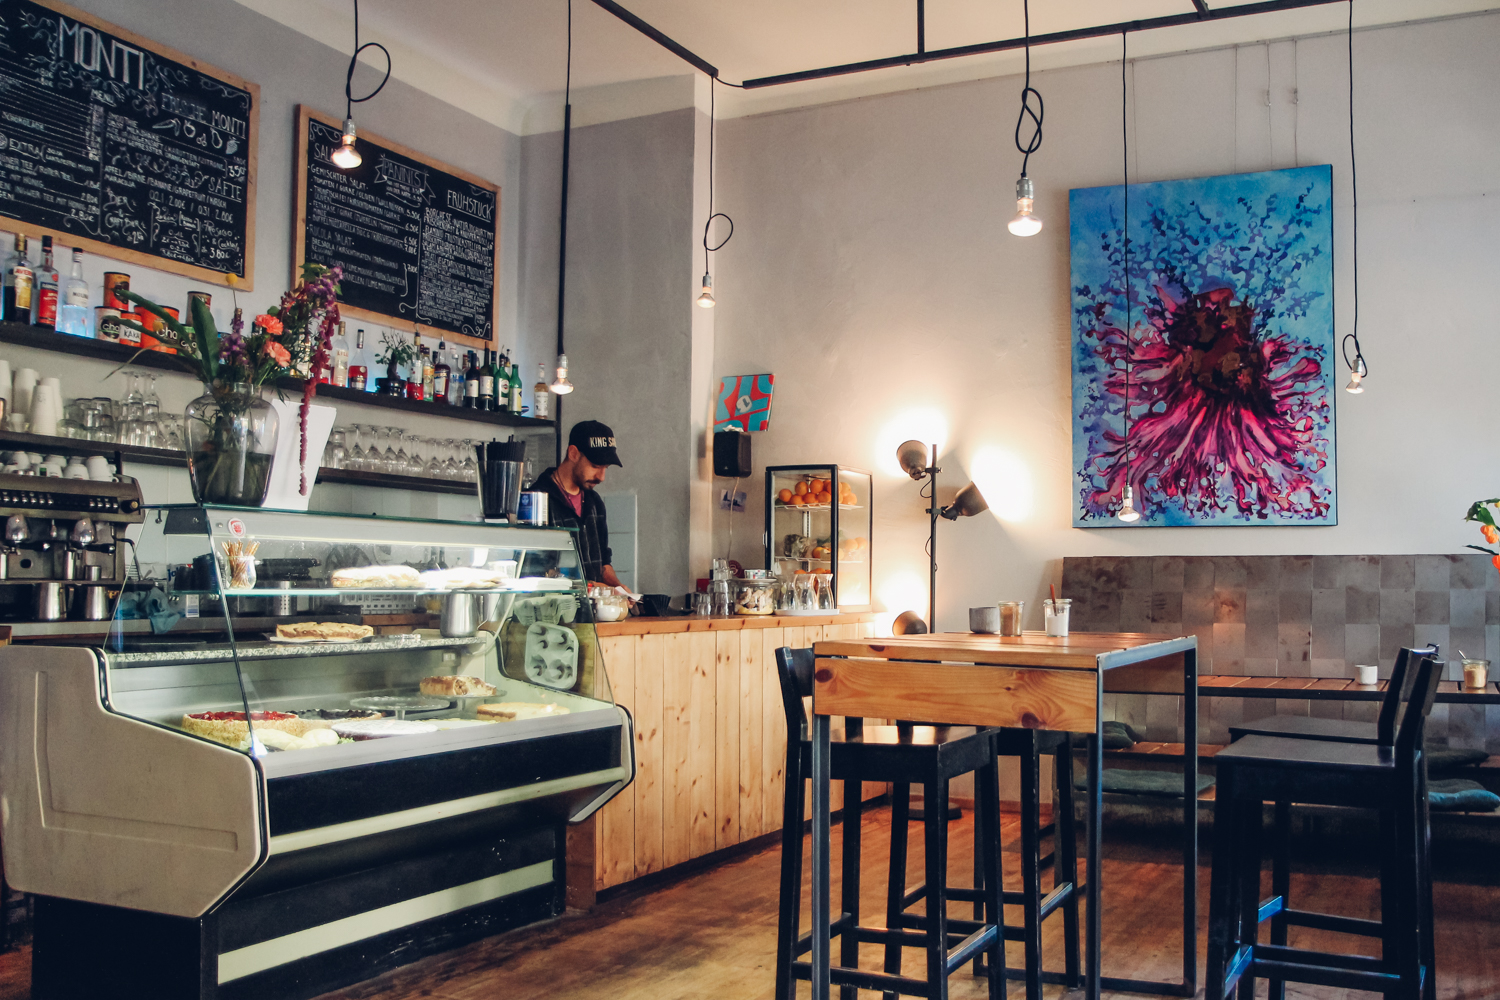 Monti Caffe' Bar – A True Italian Restaurant in Friedrichshain